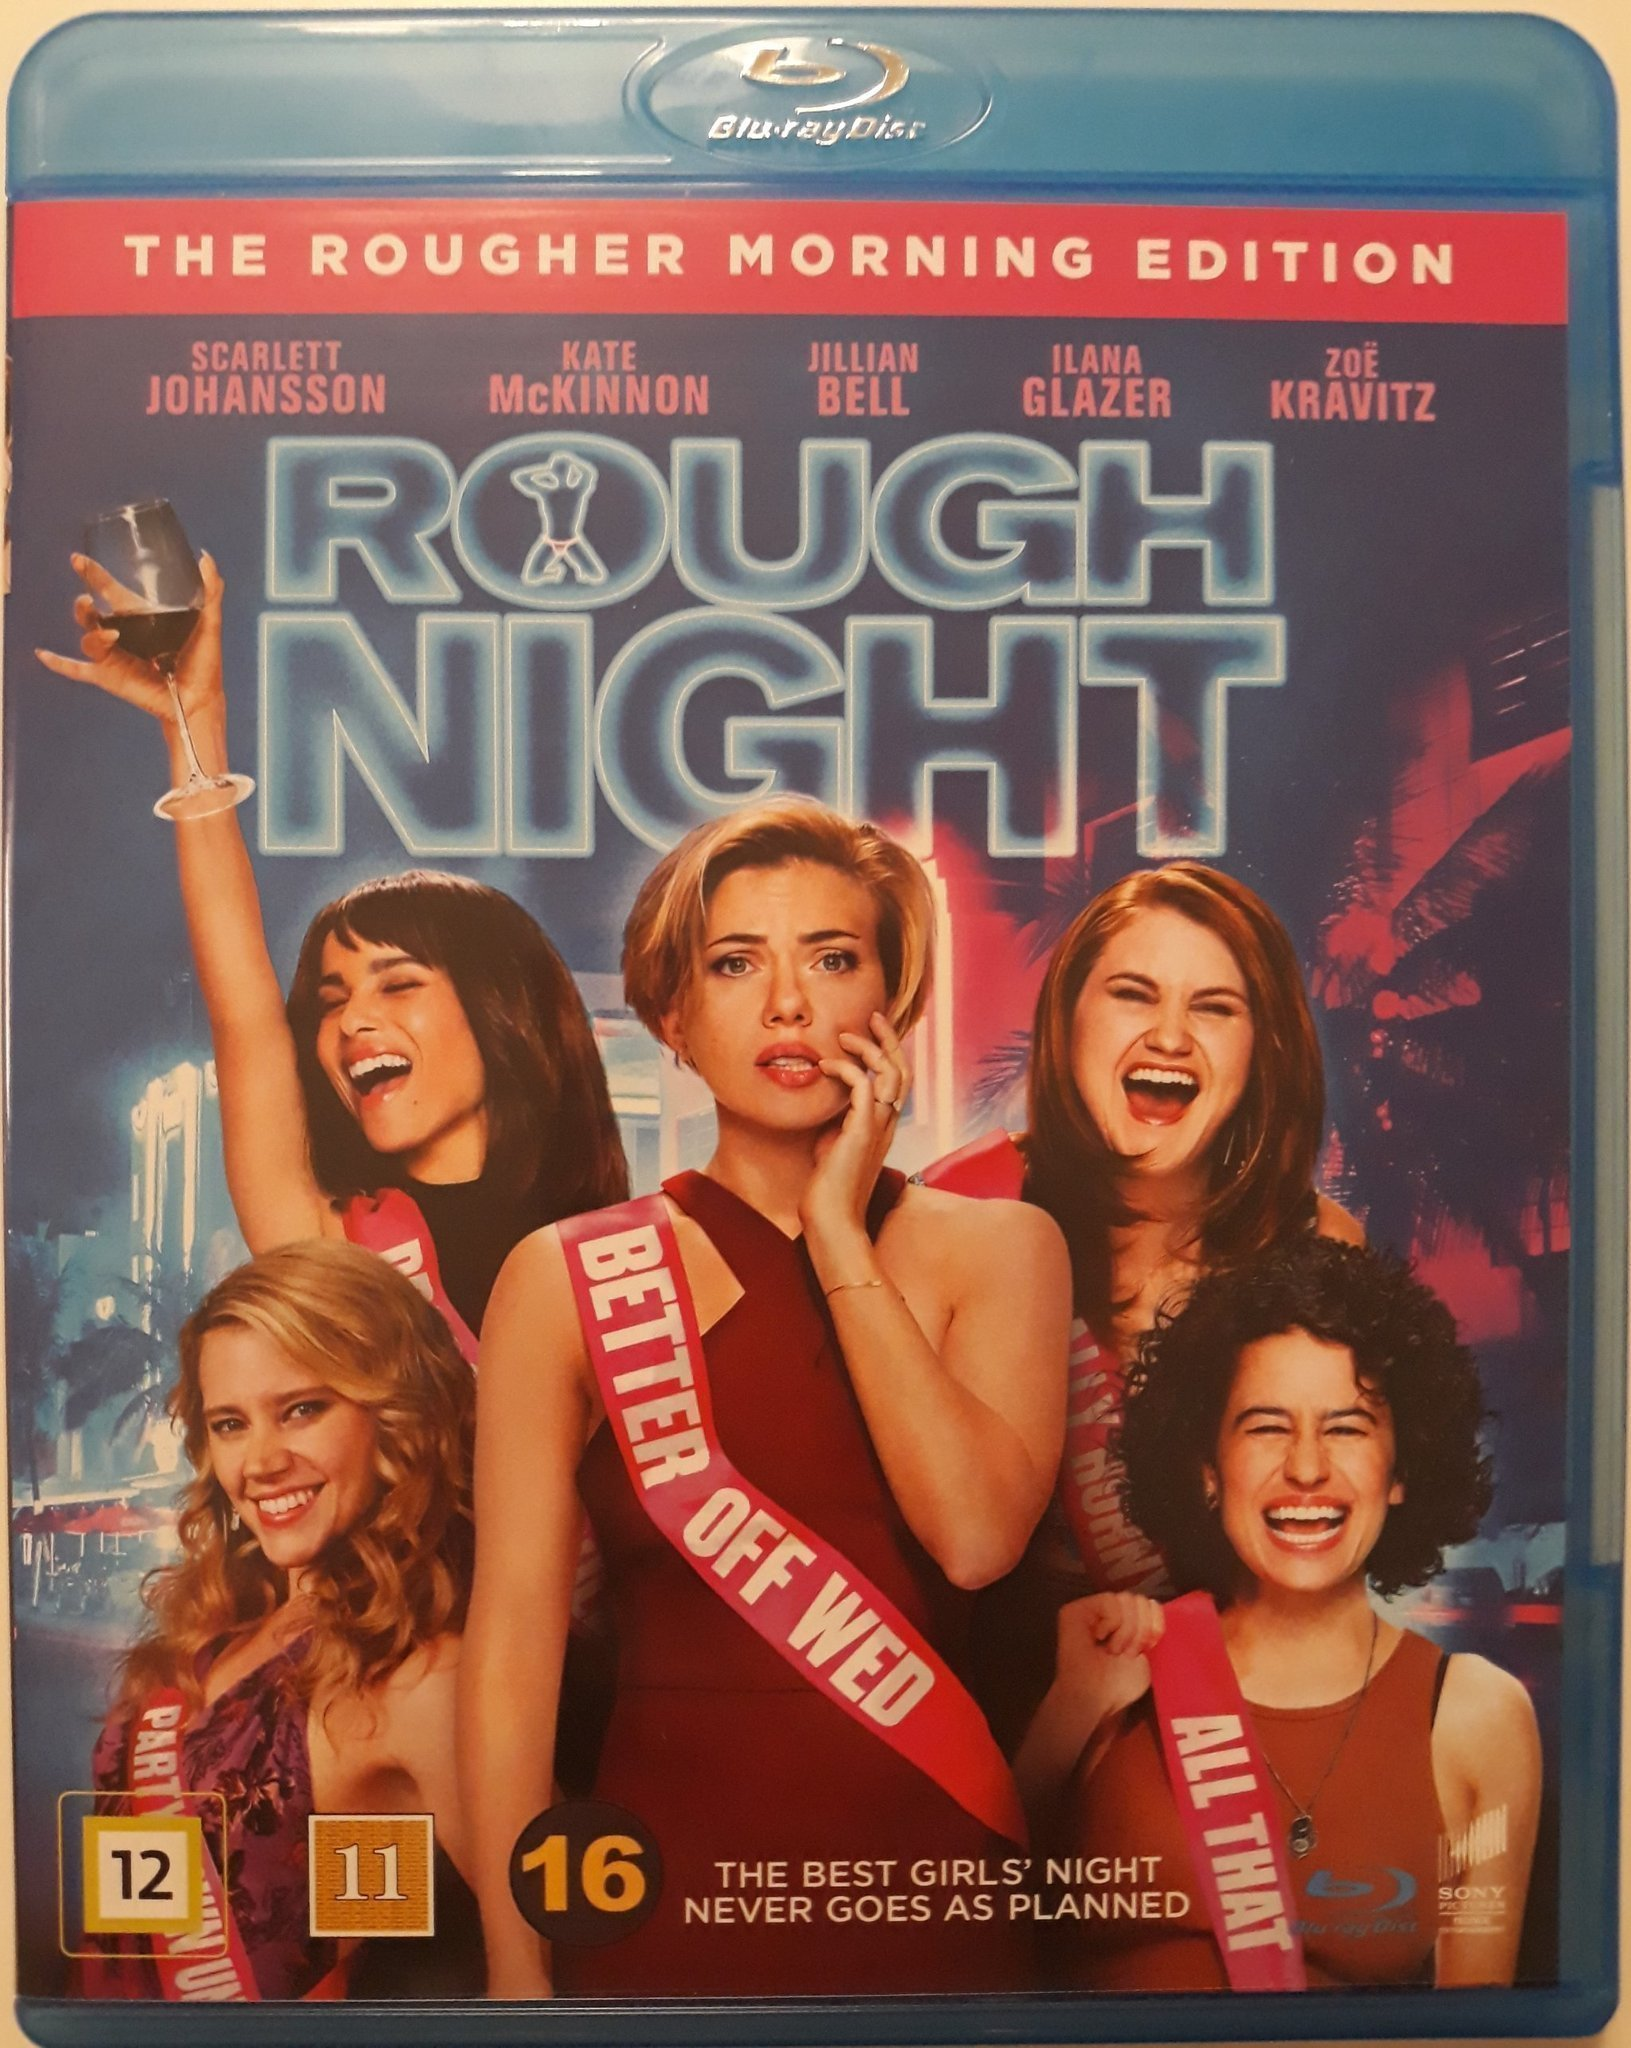 ROUGH NIGHT blu-ray